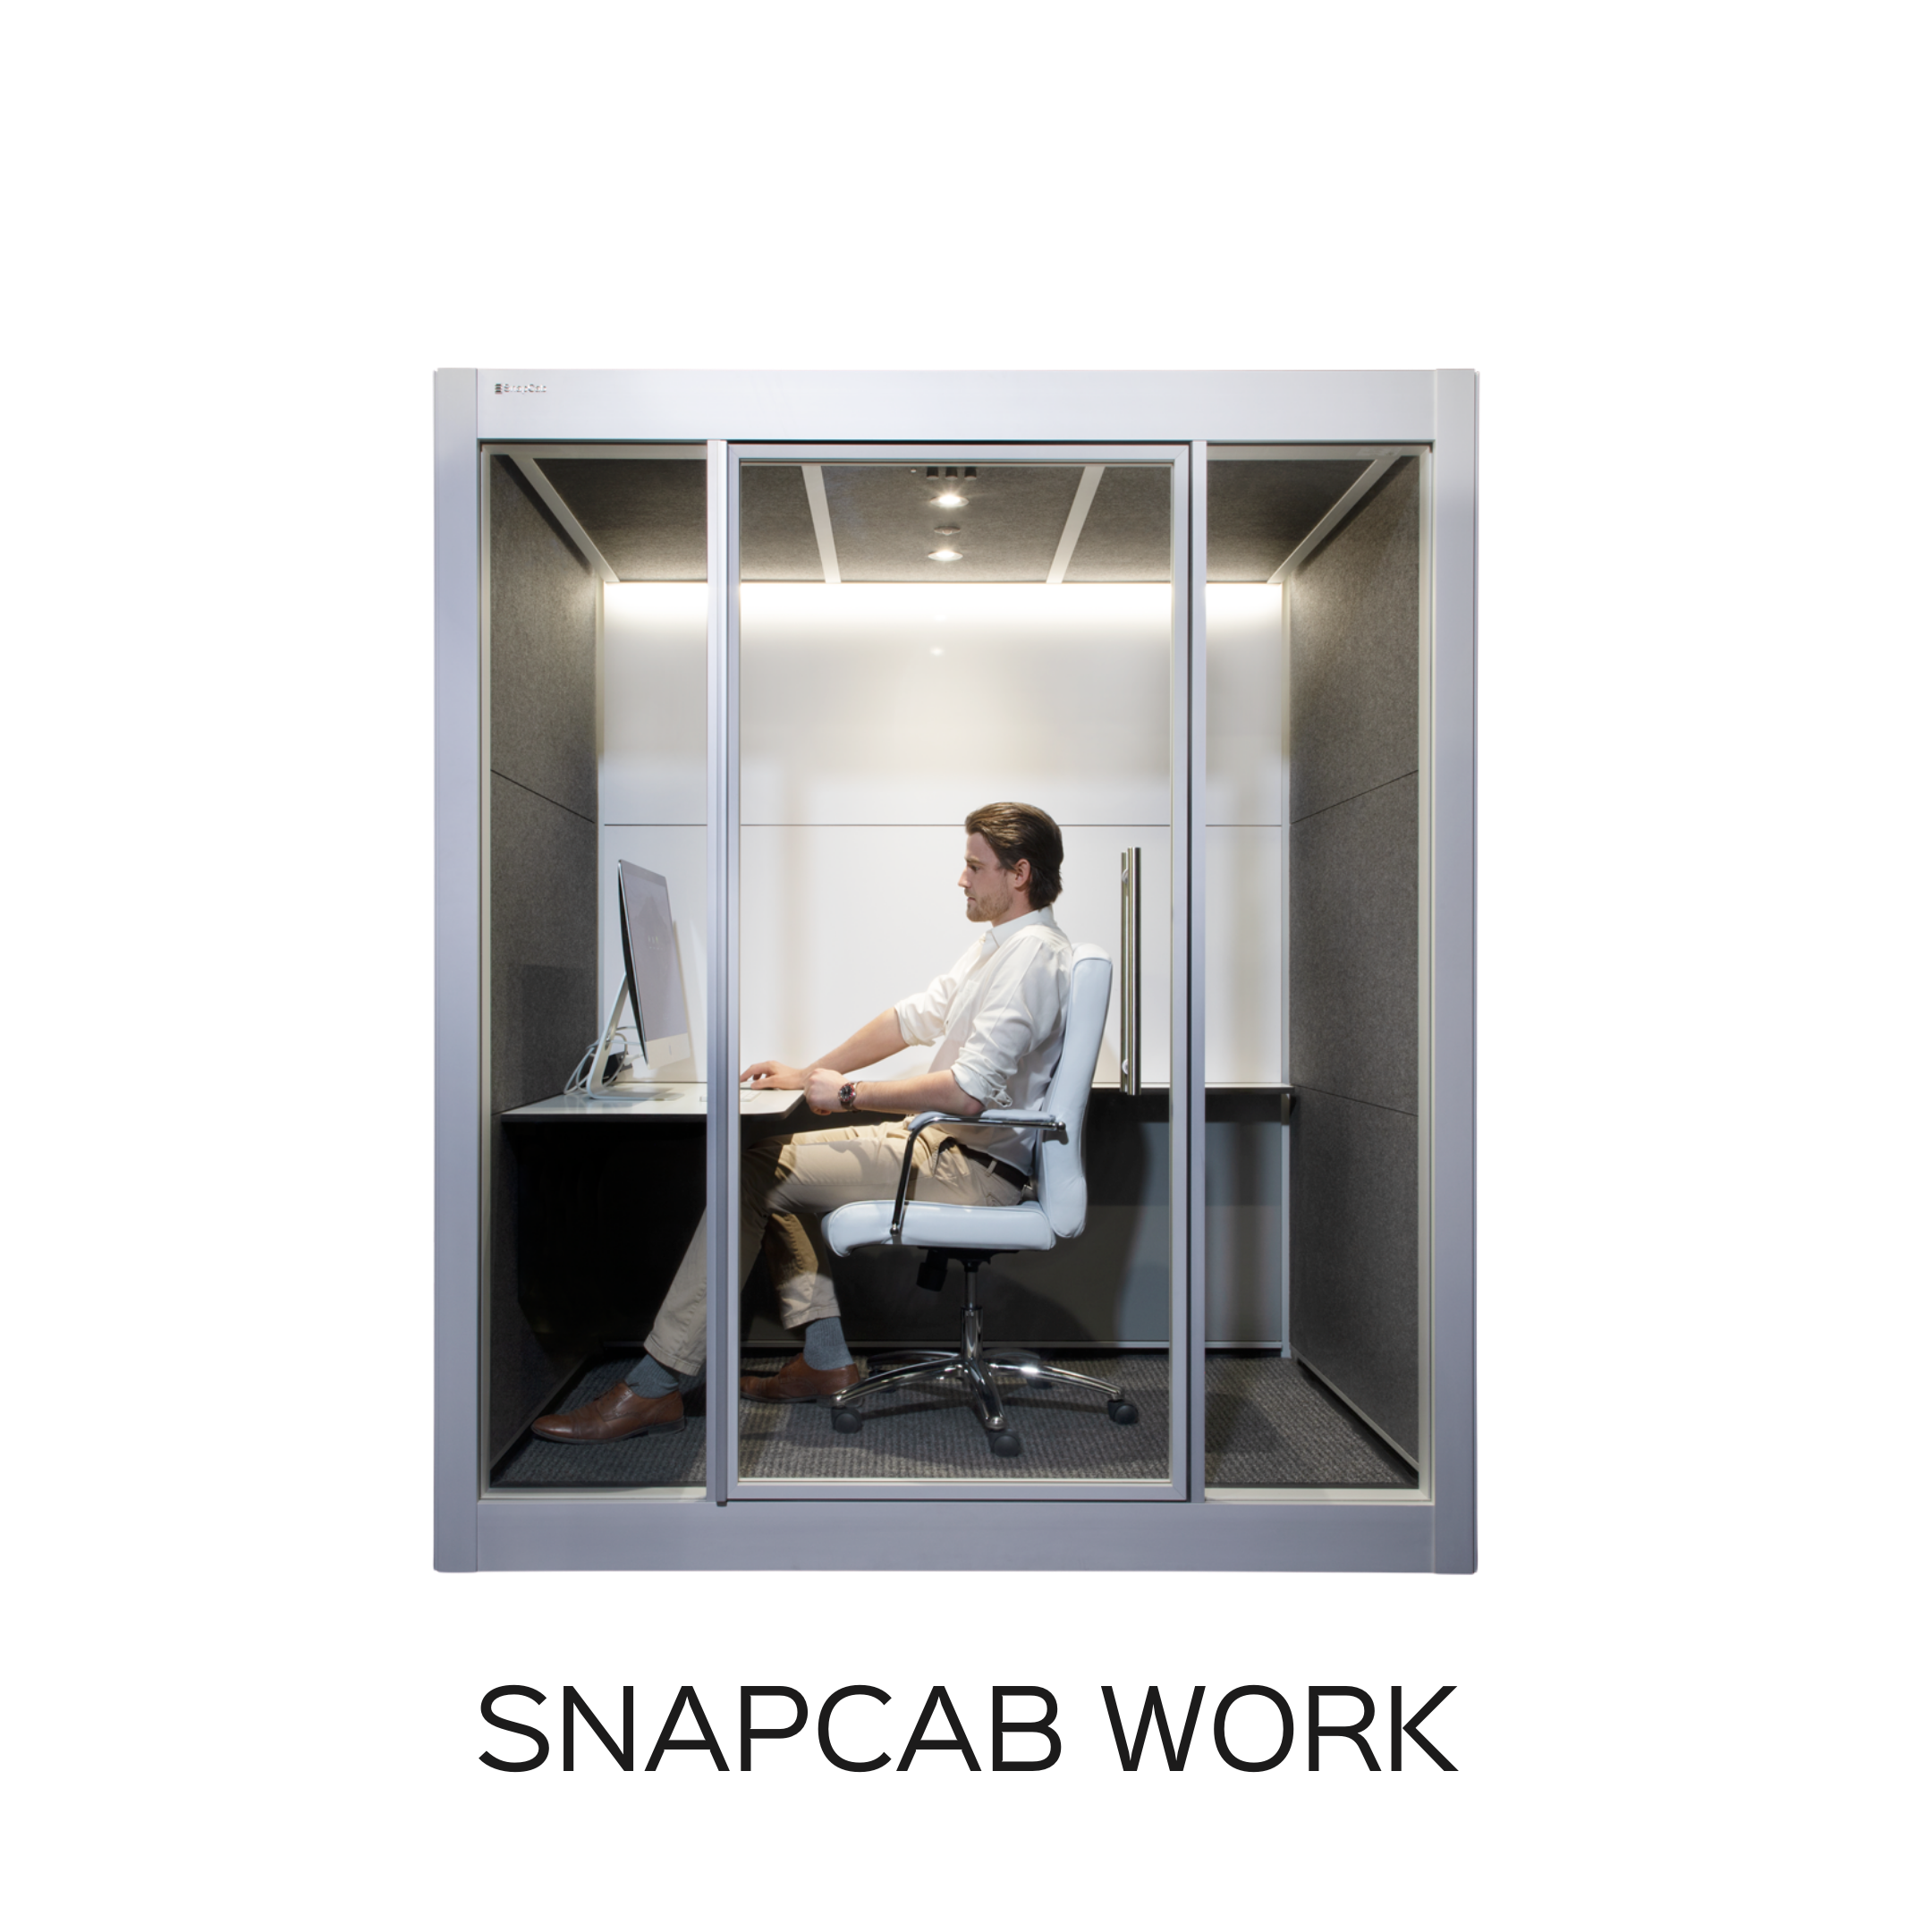 Isolation Pod for Workspaces - SnapCab Work